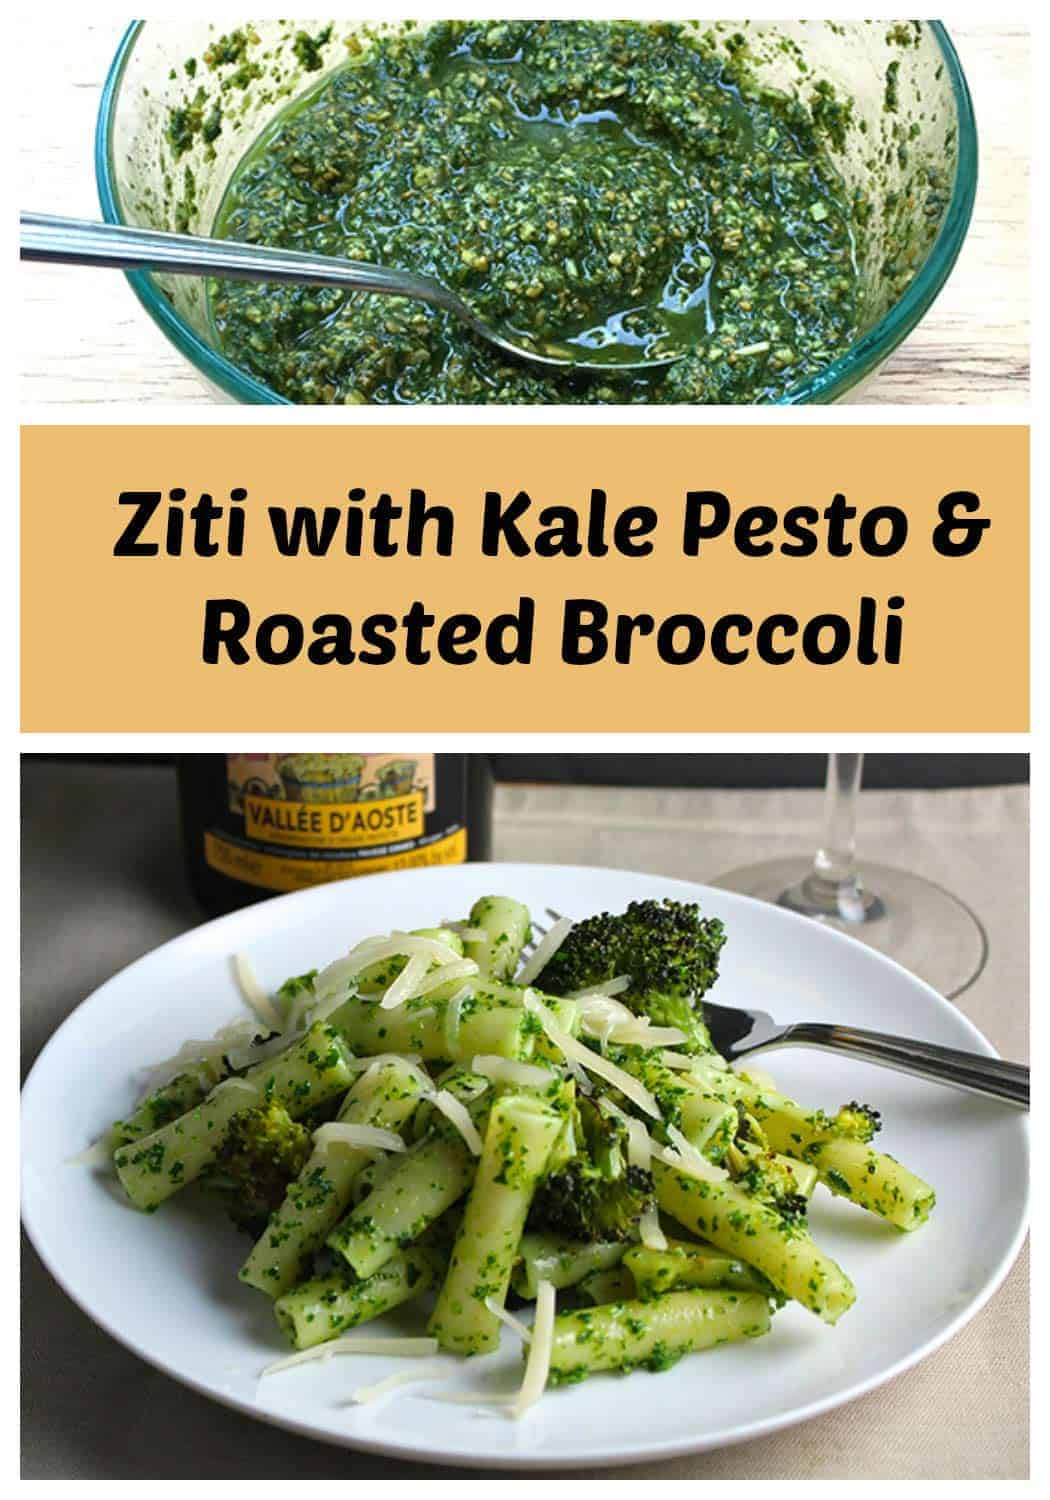 Ziti with Kale Pesto & Roasted Broccoli is a delicious and healthy pasta recipe.